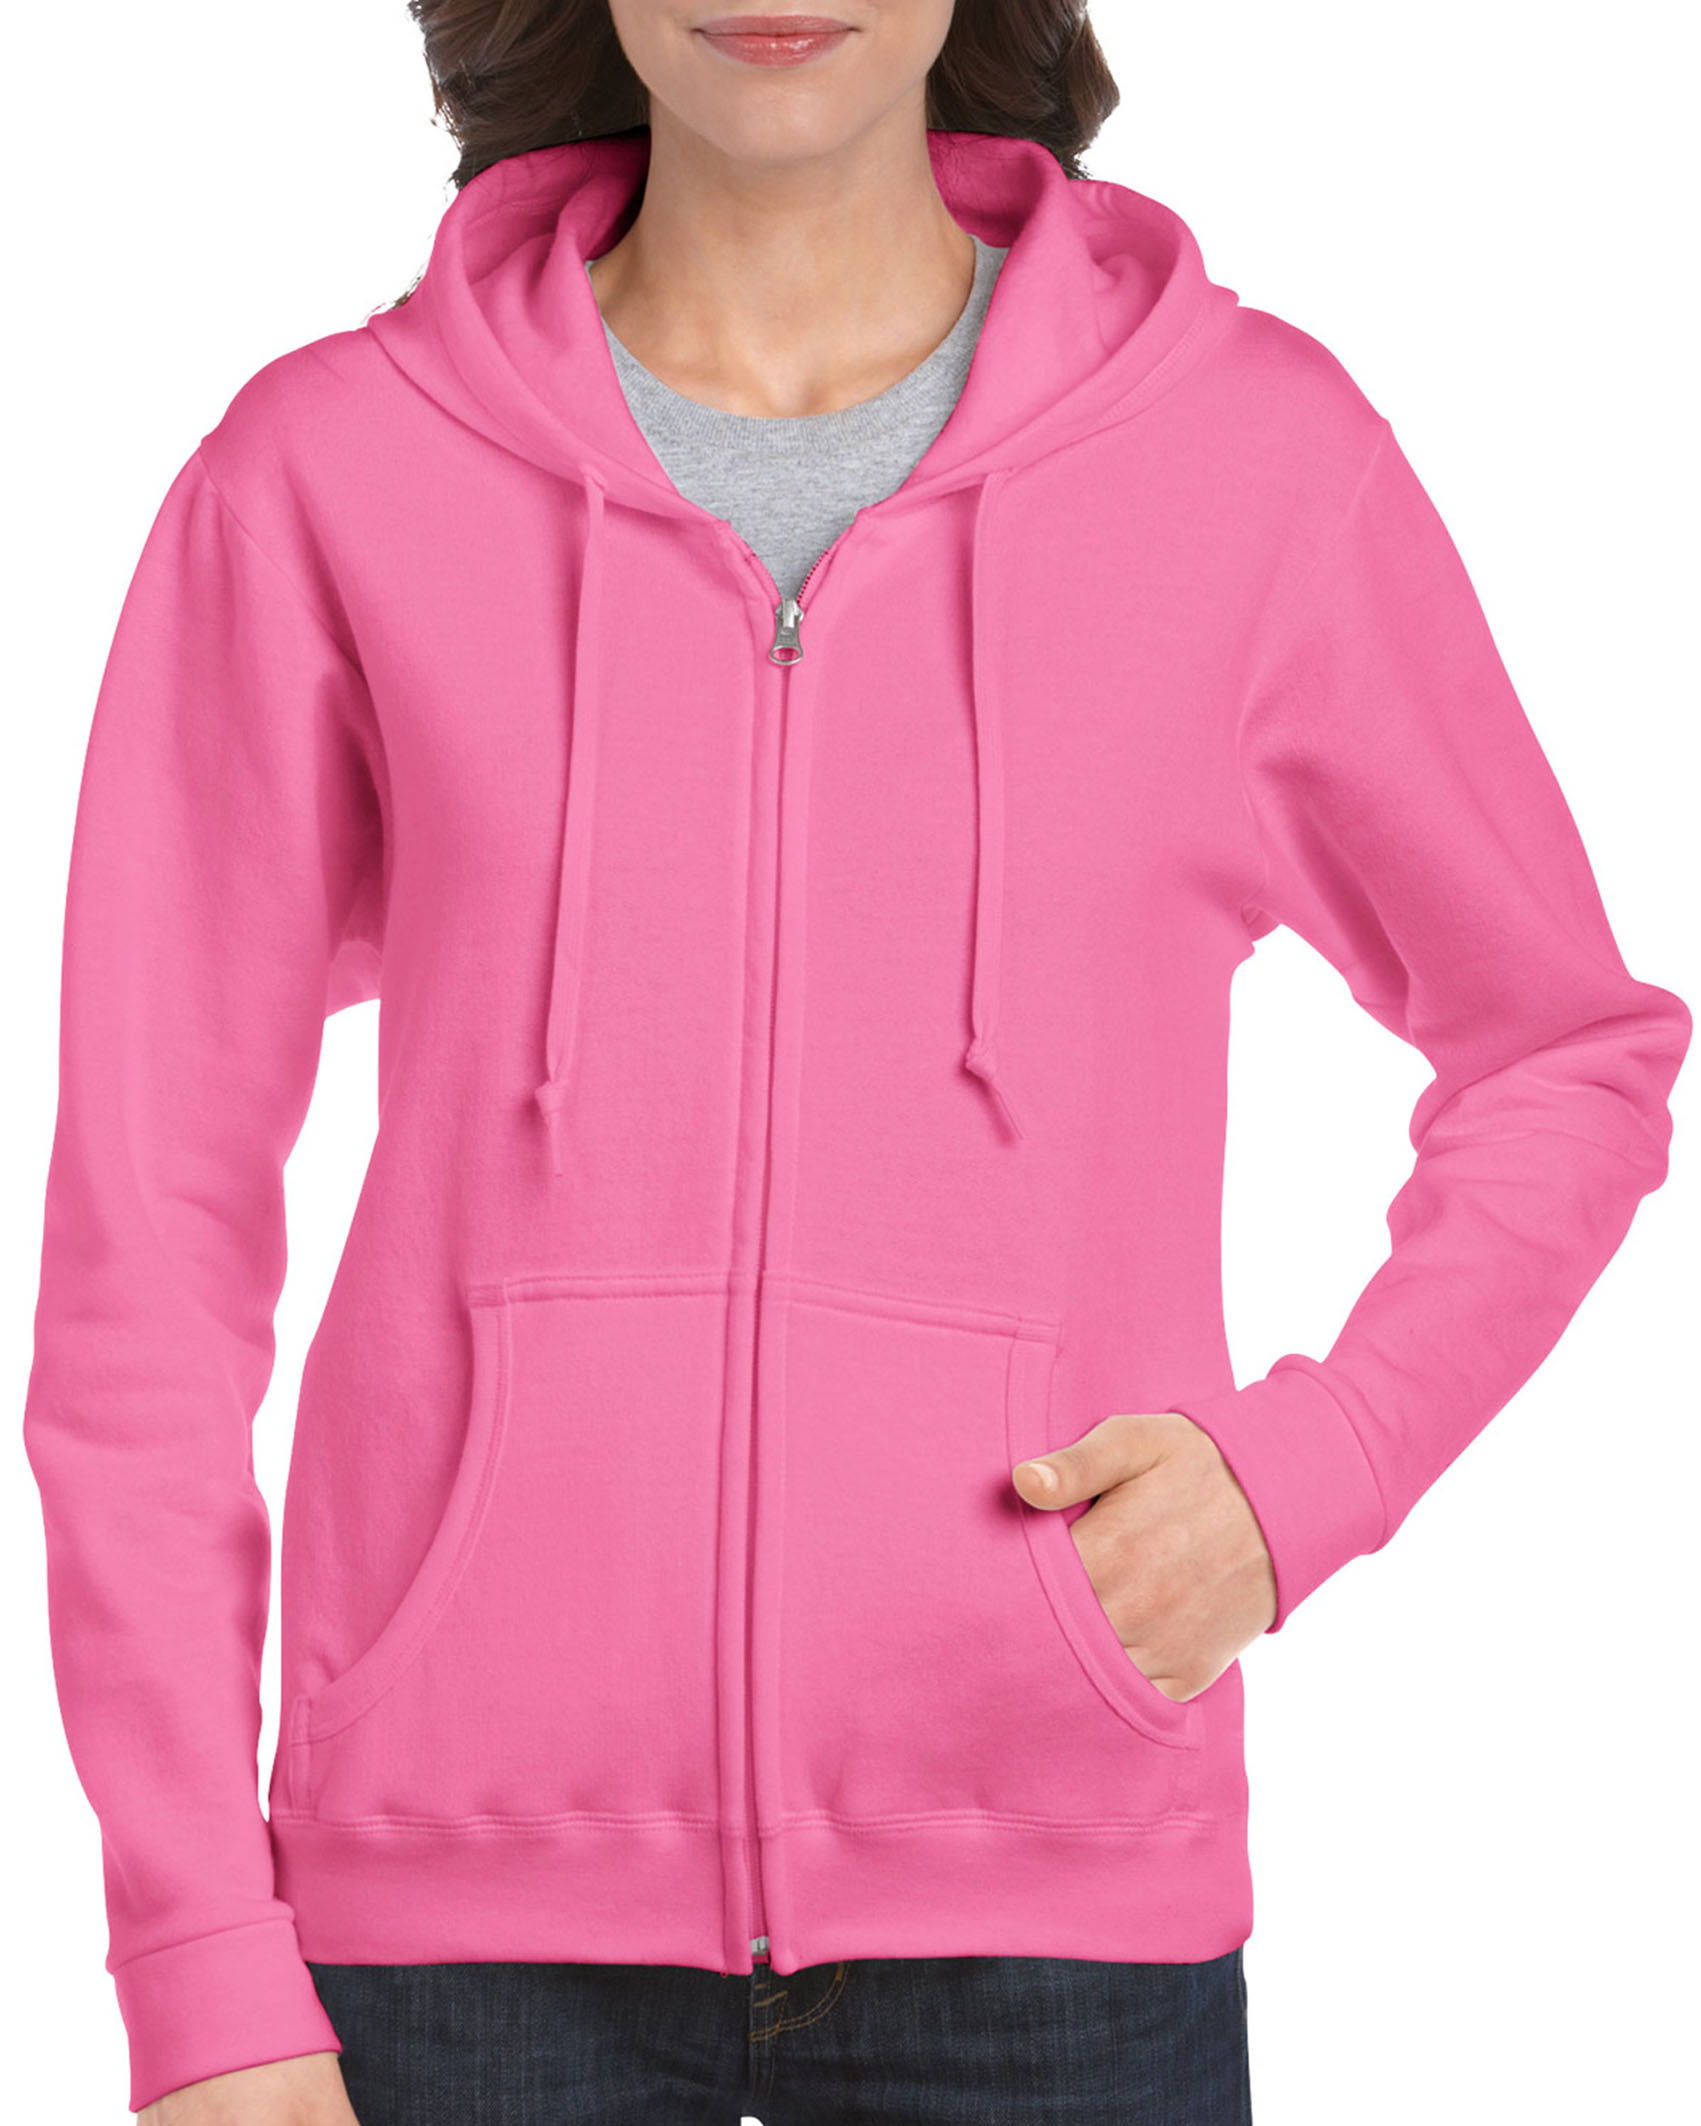 Gildan Sweater Hooded Full Zip HeavyBlend for her